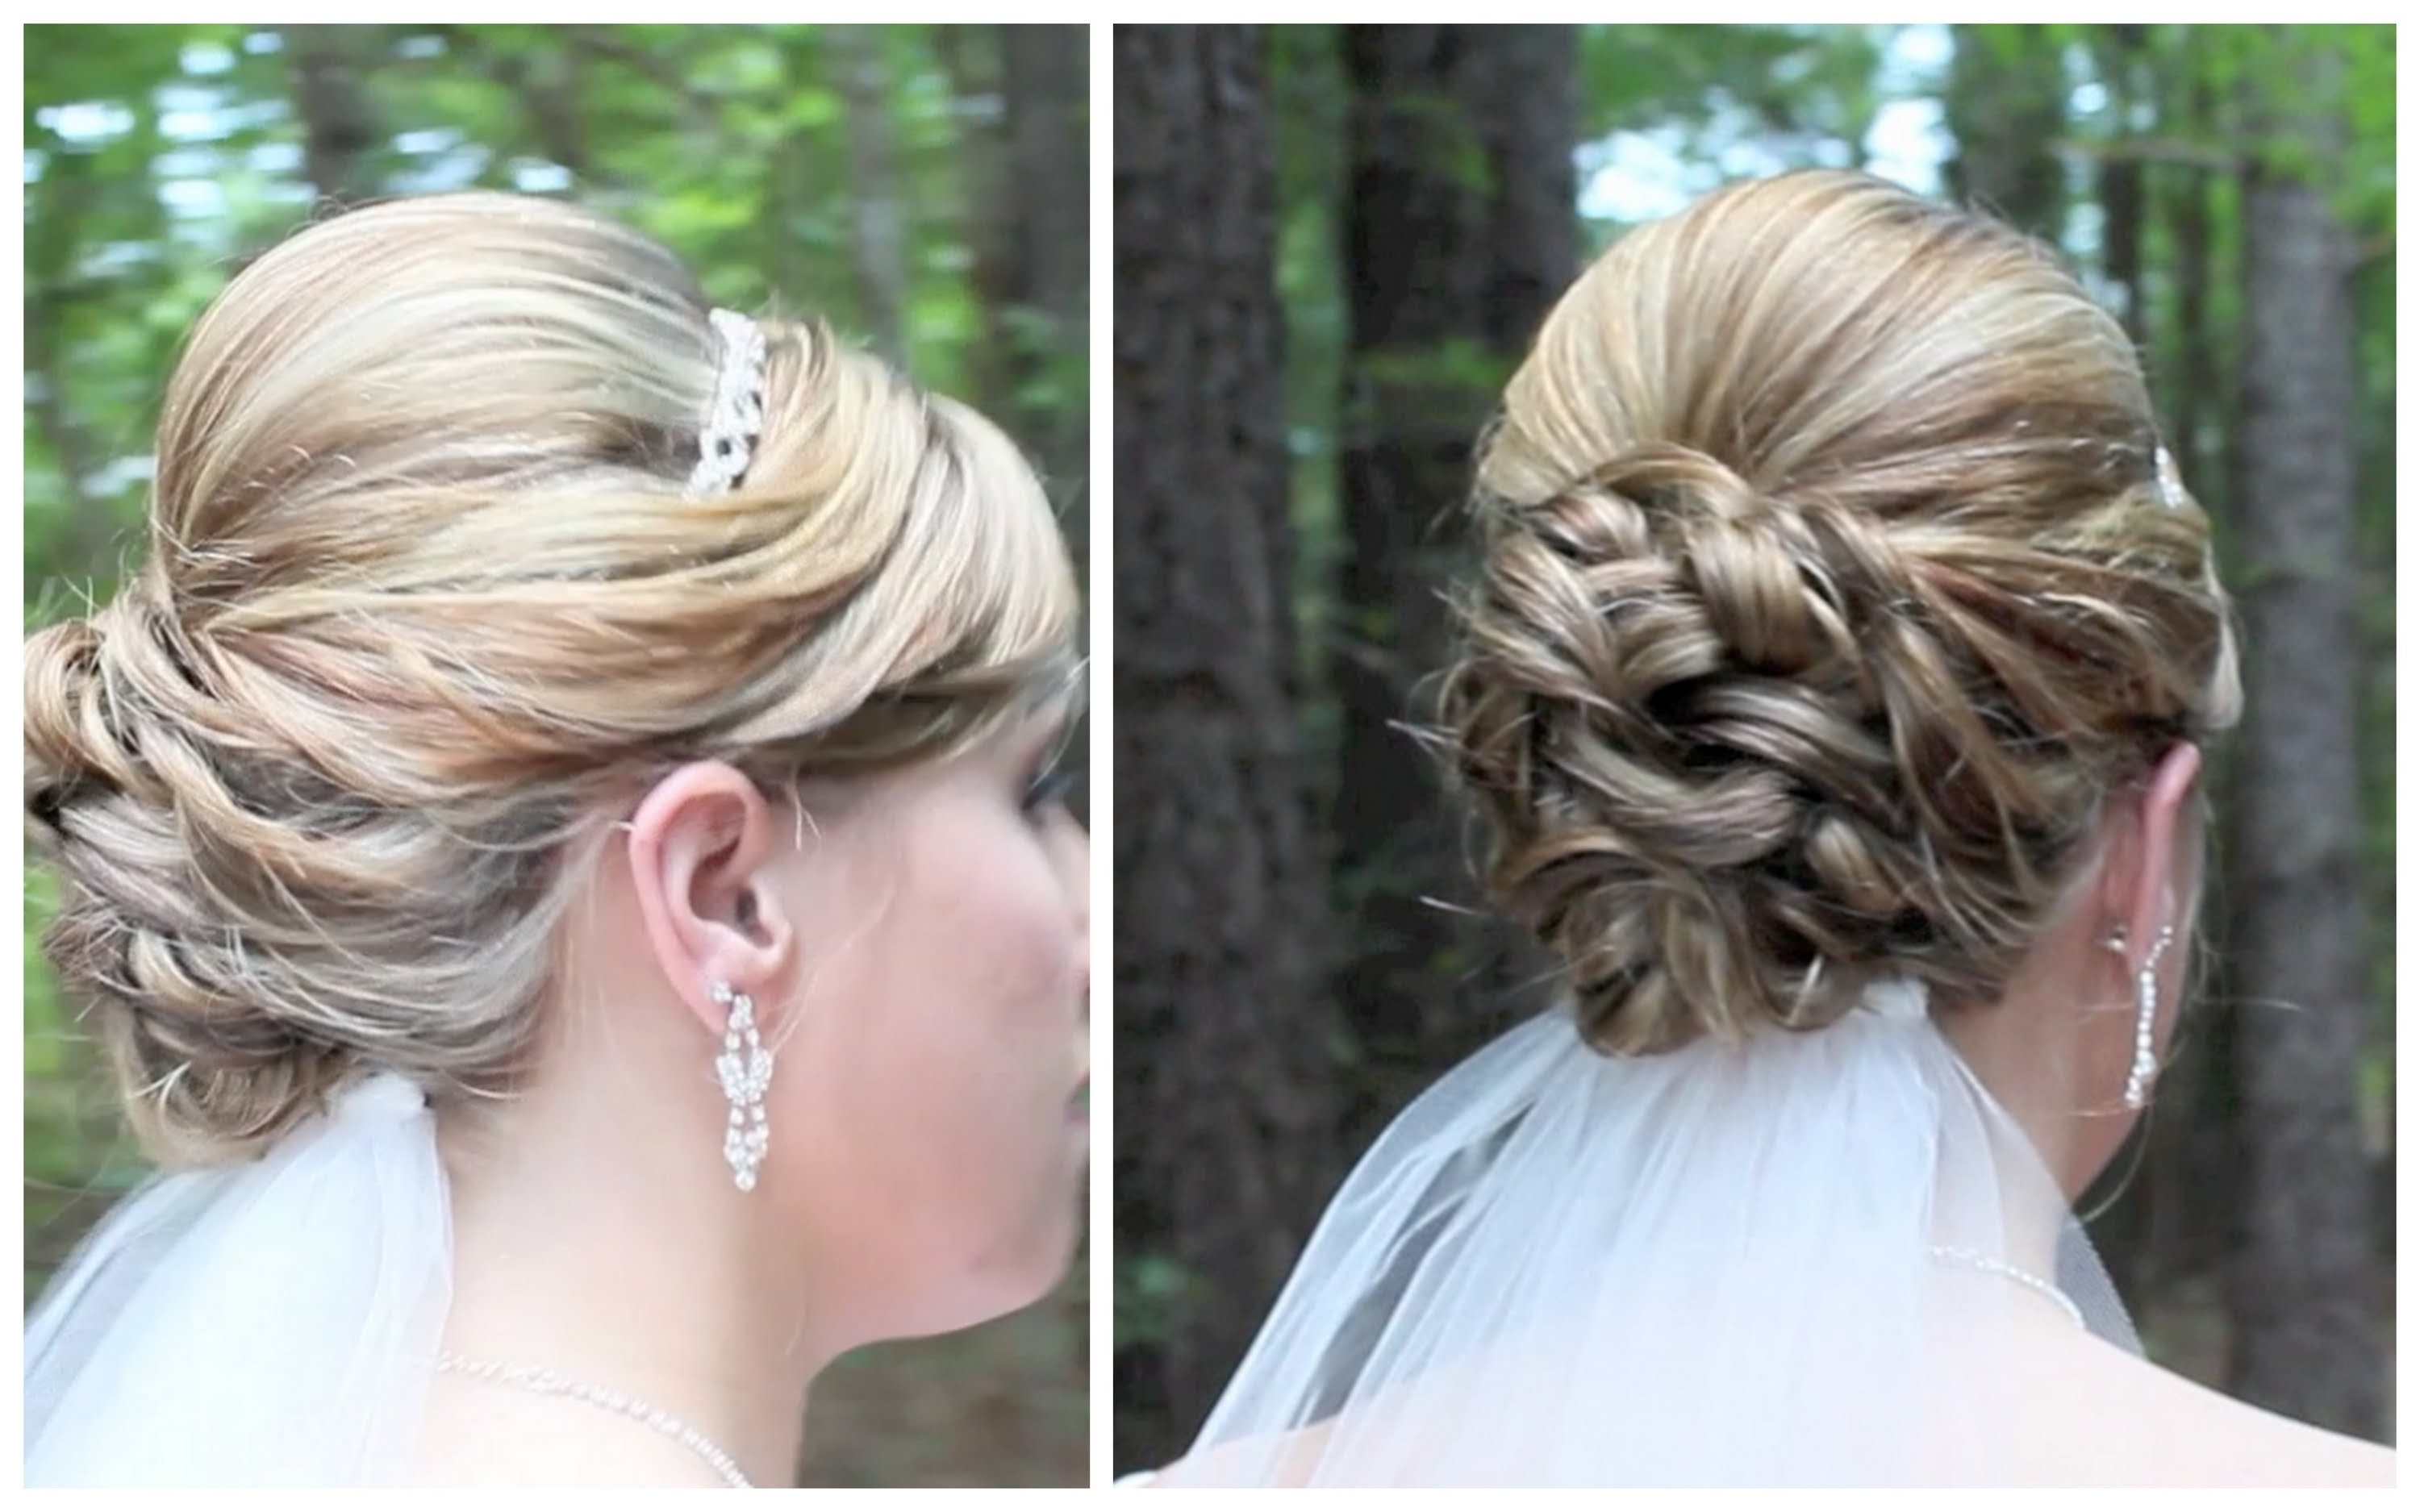 2017 Diy Wedding Hairstyles For Medium Length Hair In Bridal Updo On Shoulder Length Hair – Youtube (View 3 of 15)